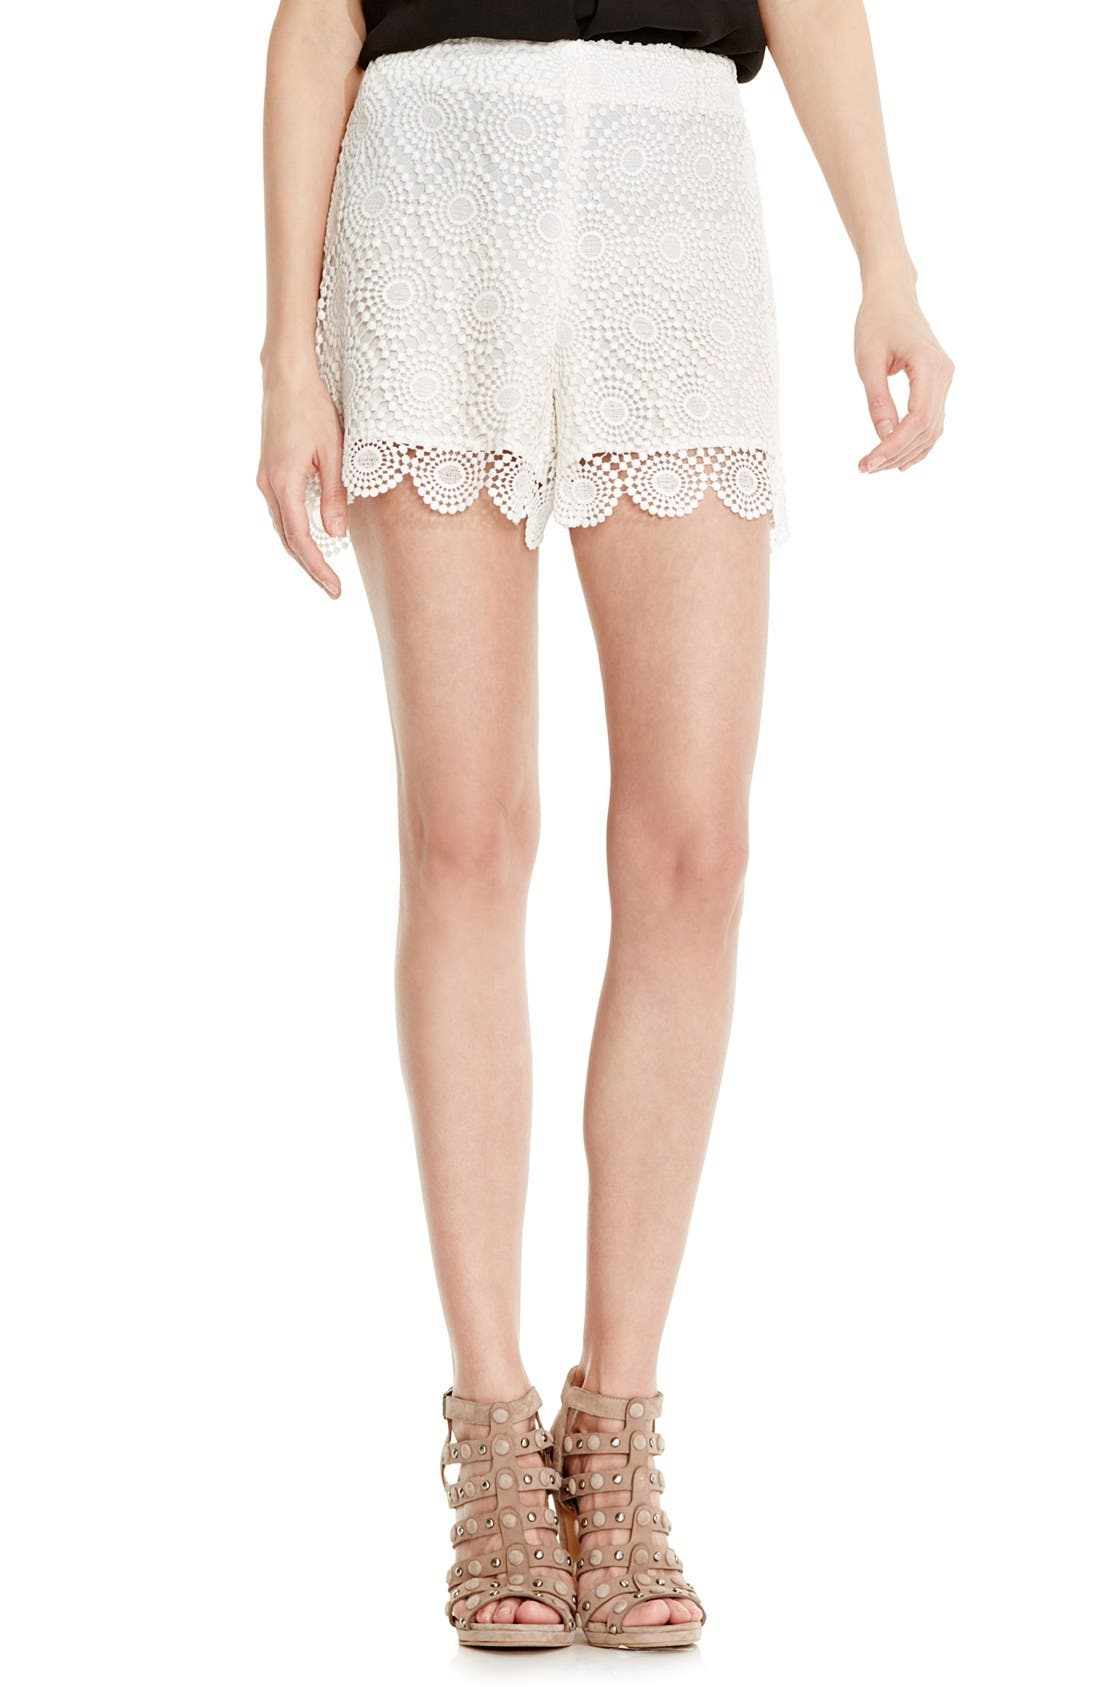 Alternate Image 1 Selected - Vince Camuto Embroidered Lace Shorts (Regular & Petite)